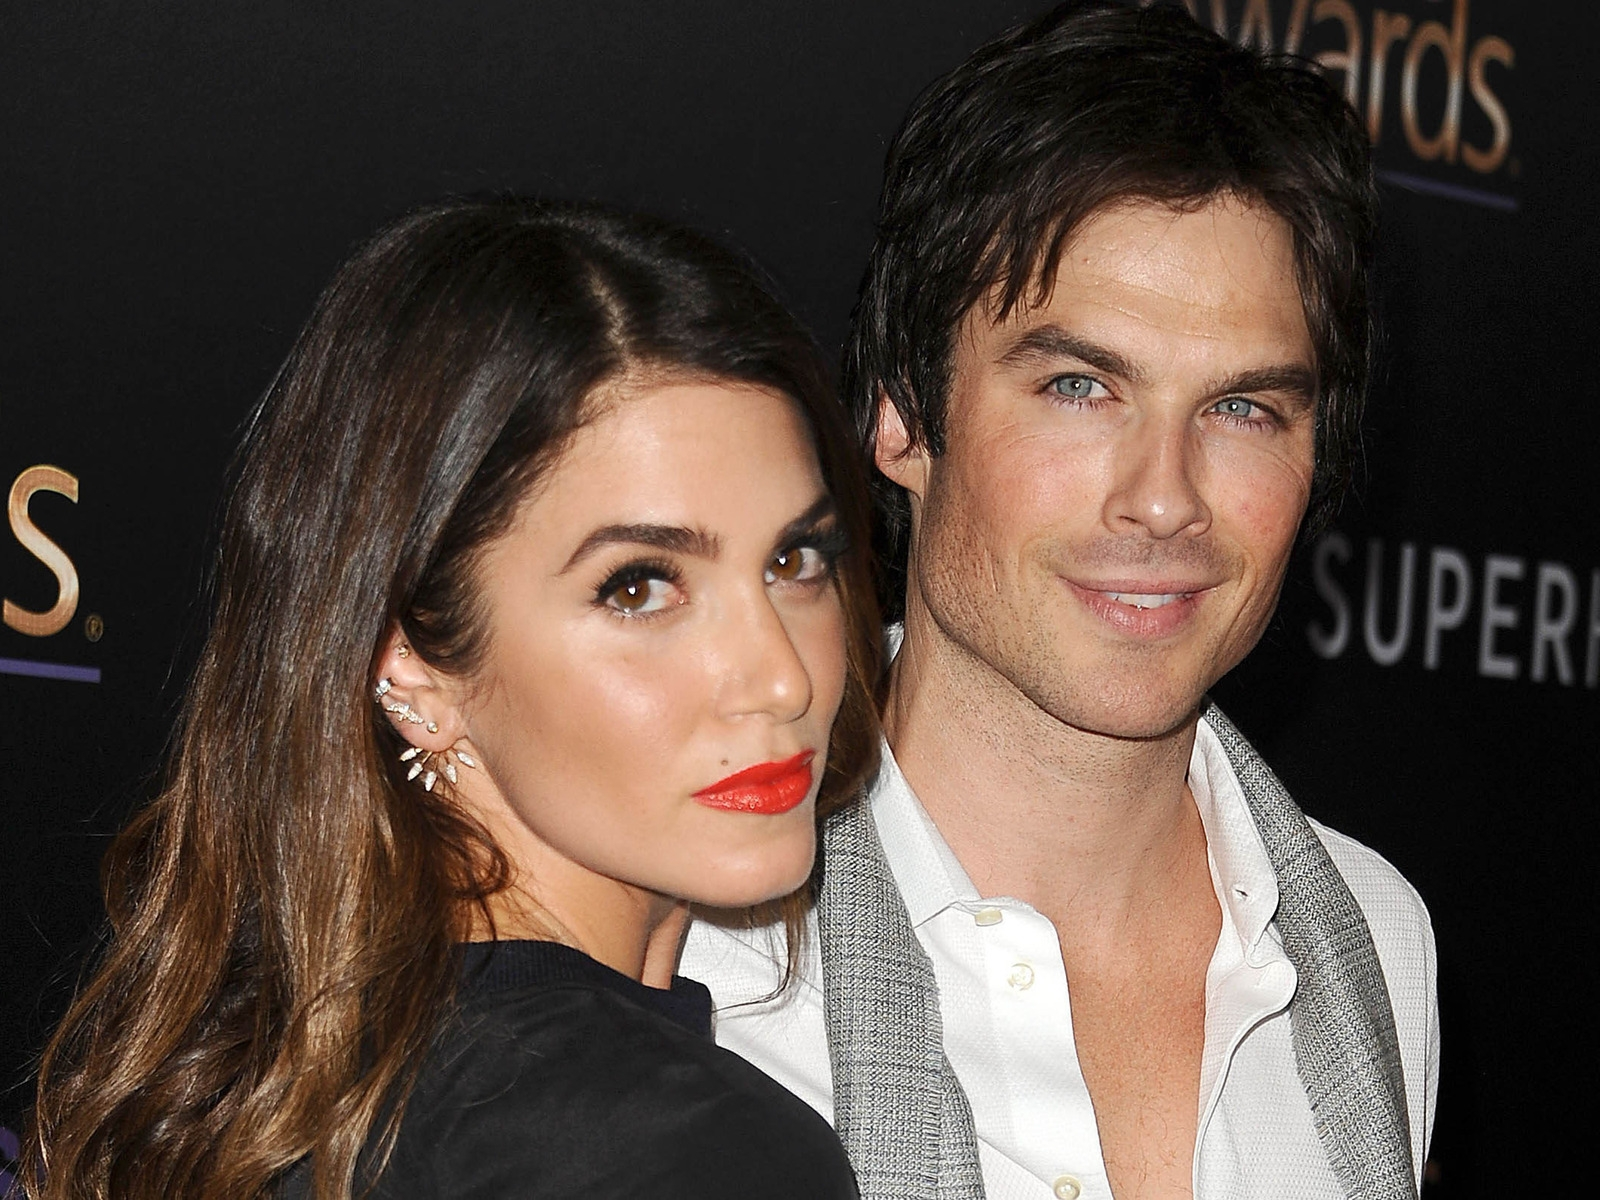 Nikki Reed and Ian Somerhalder for 1600 x 1200 resolution